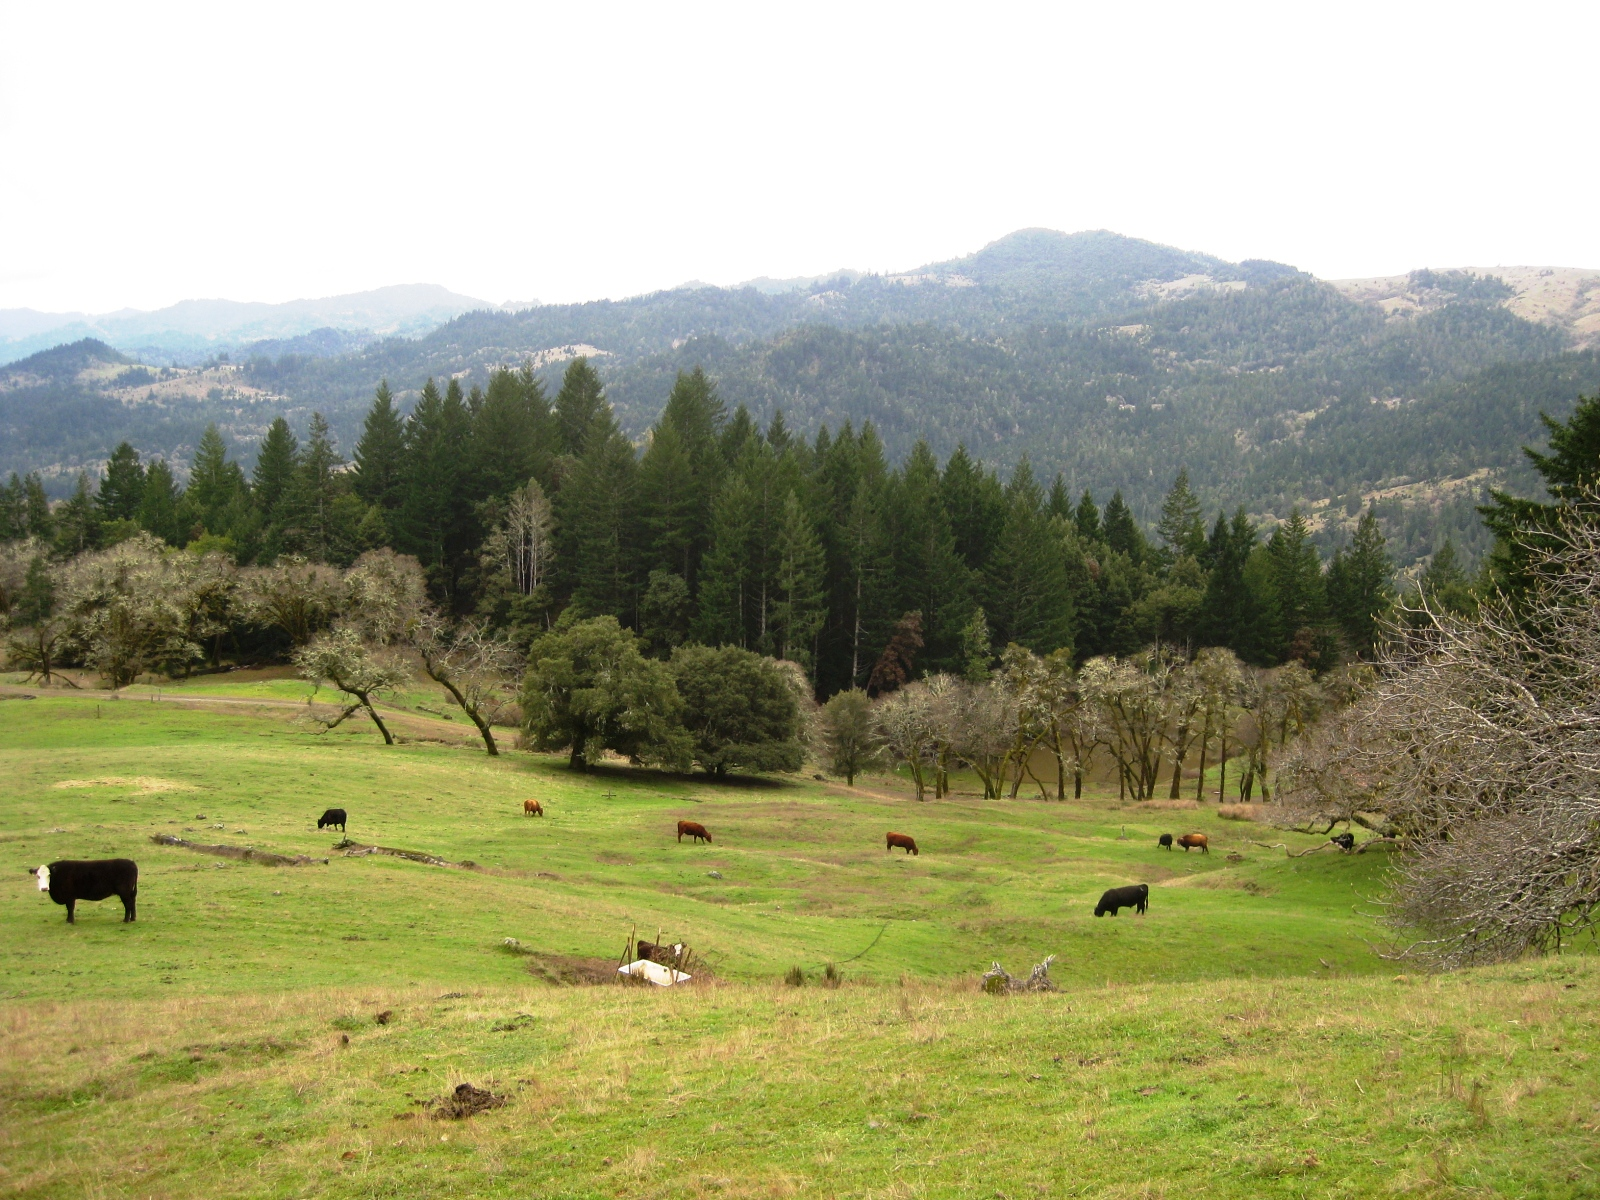 chapman ranch The chapman ranch is a small family owned and operated timber and livestock business whose aim is to live simply and ranch sustainably.